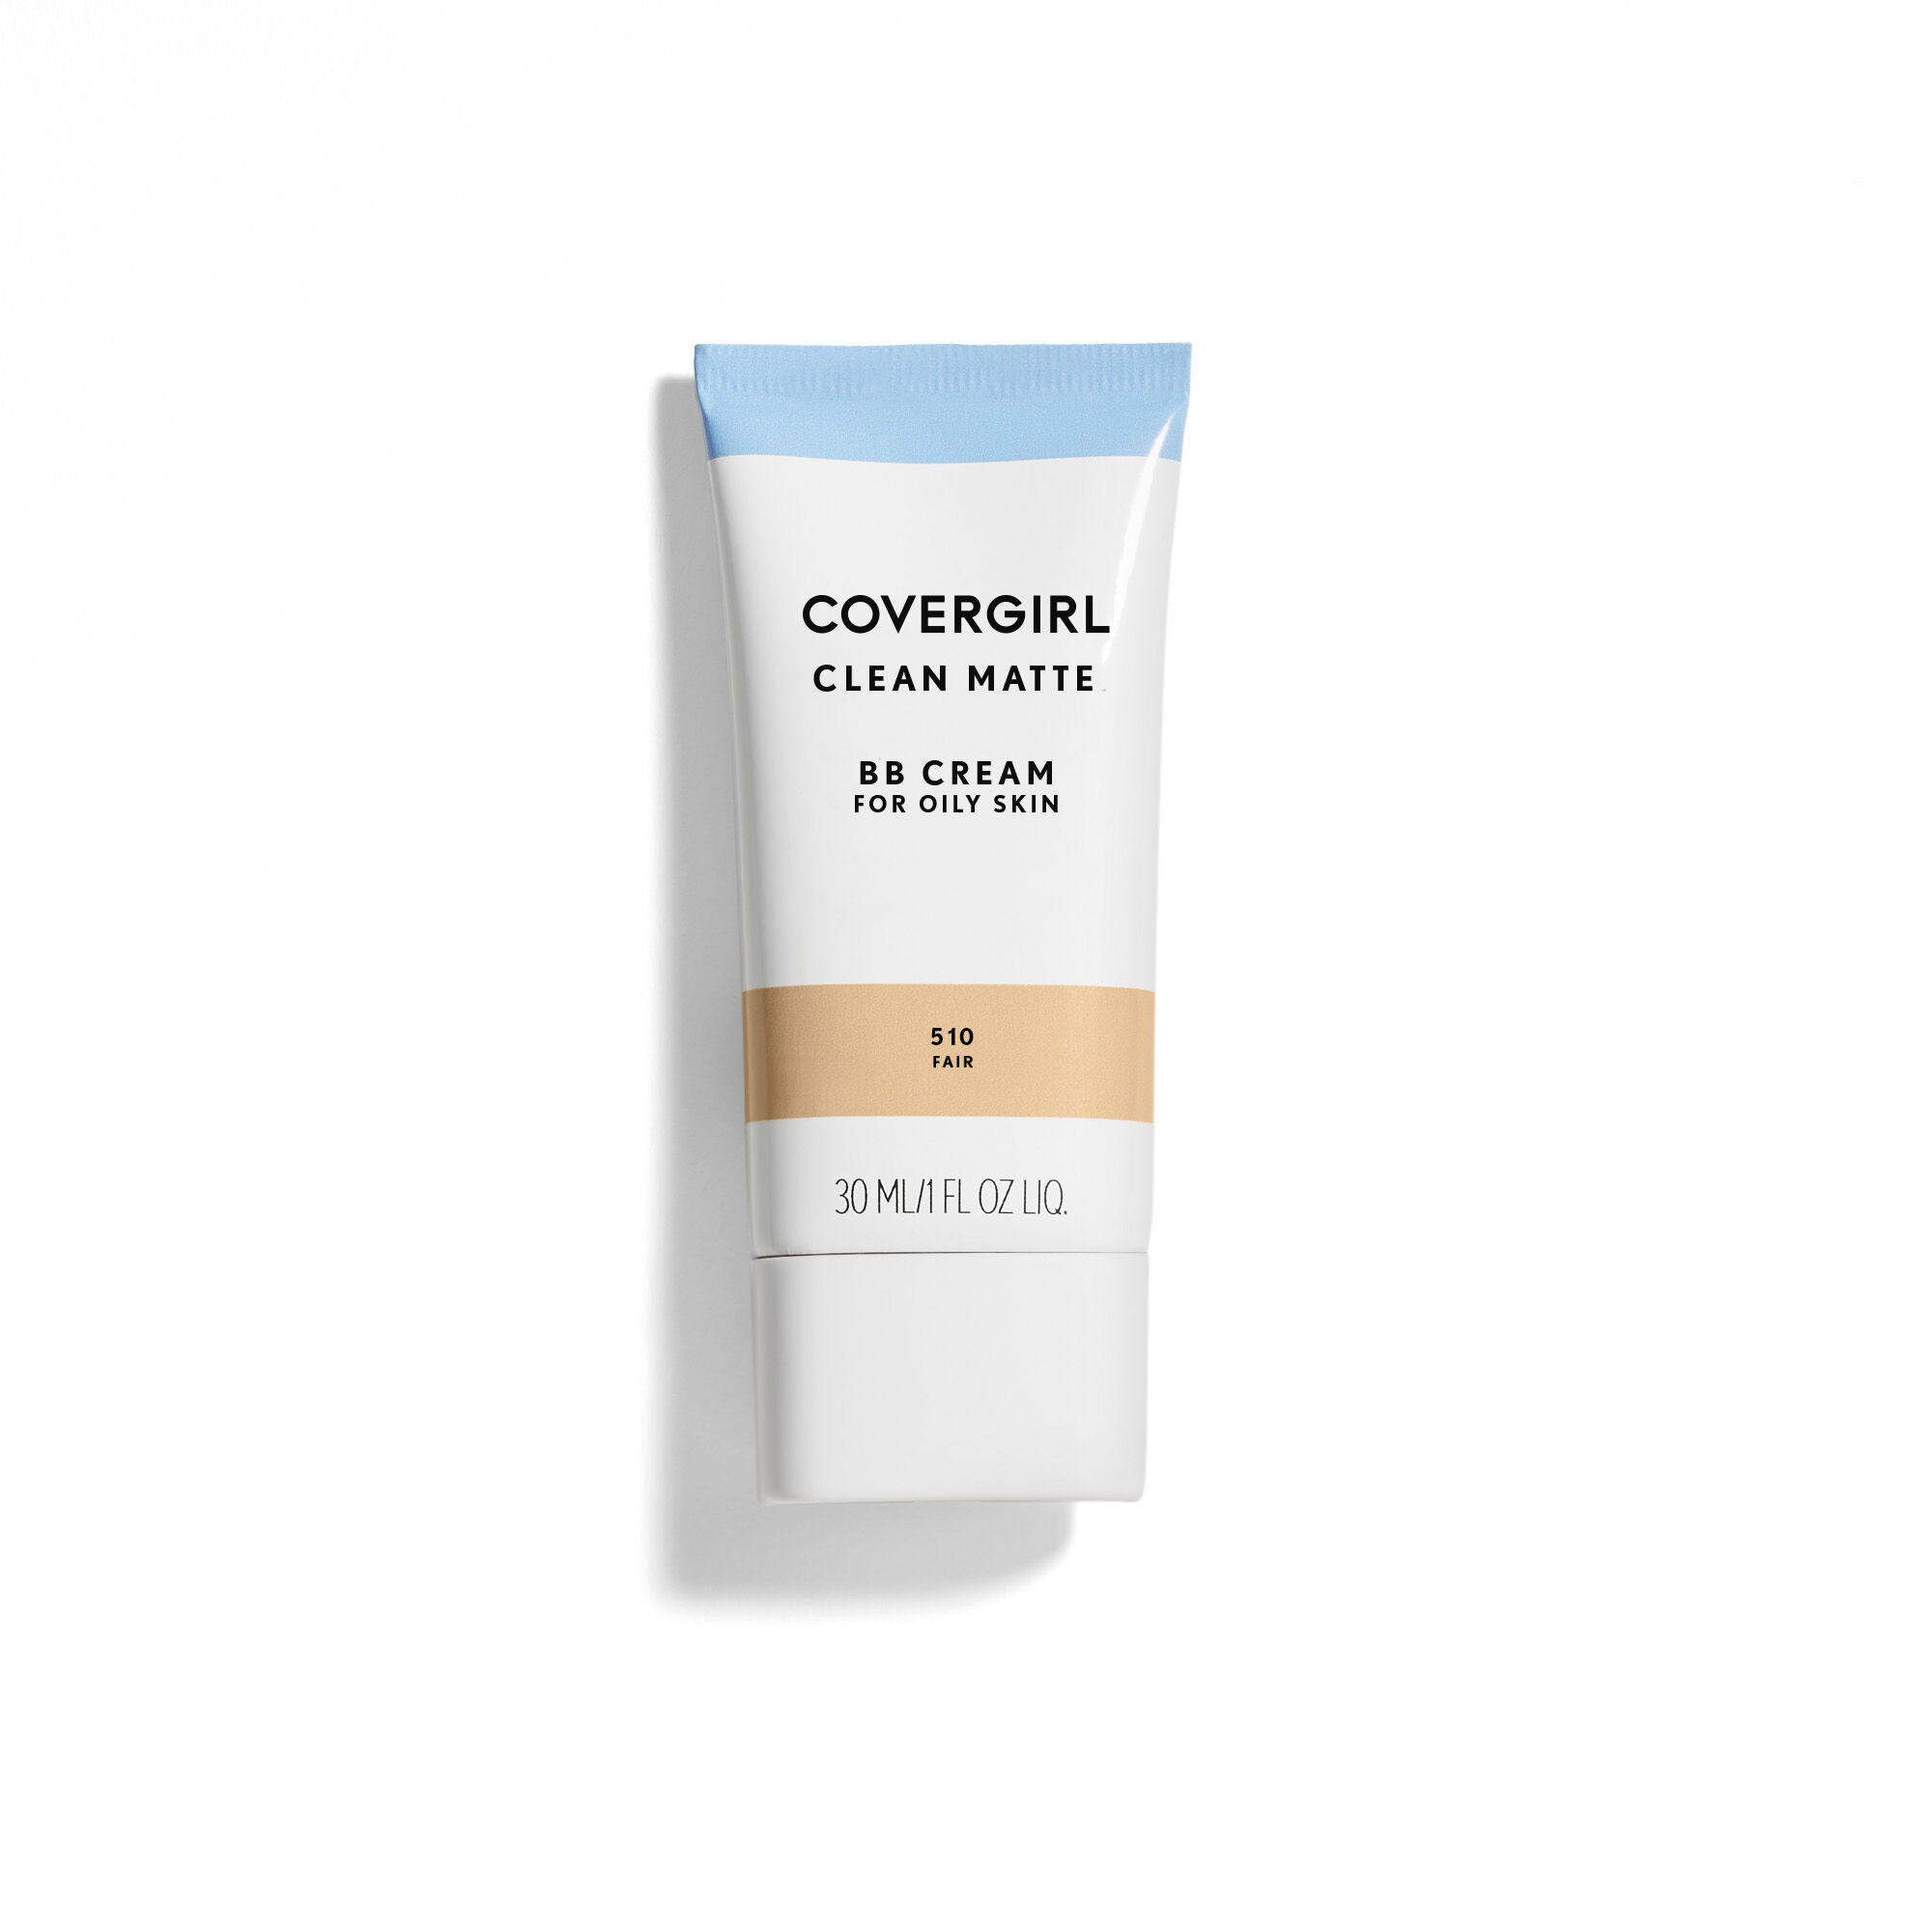 graphic relating to Bb&t Printable Deposit Slip called Refreshing Matte BB Product Contemporary Matte BB Product Covergirl